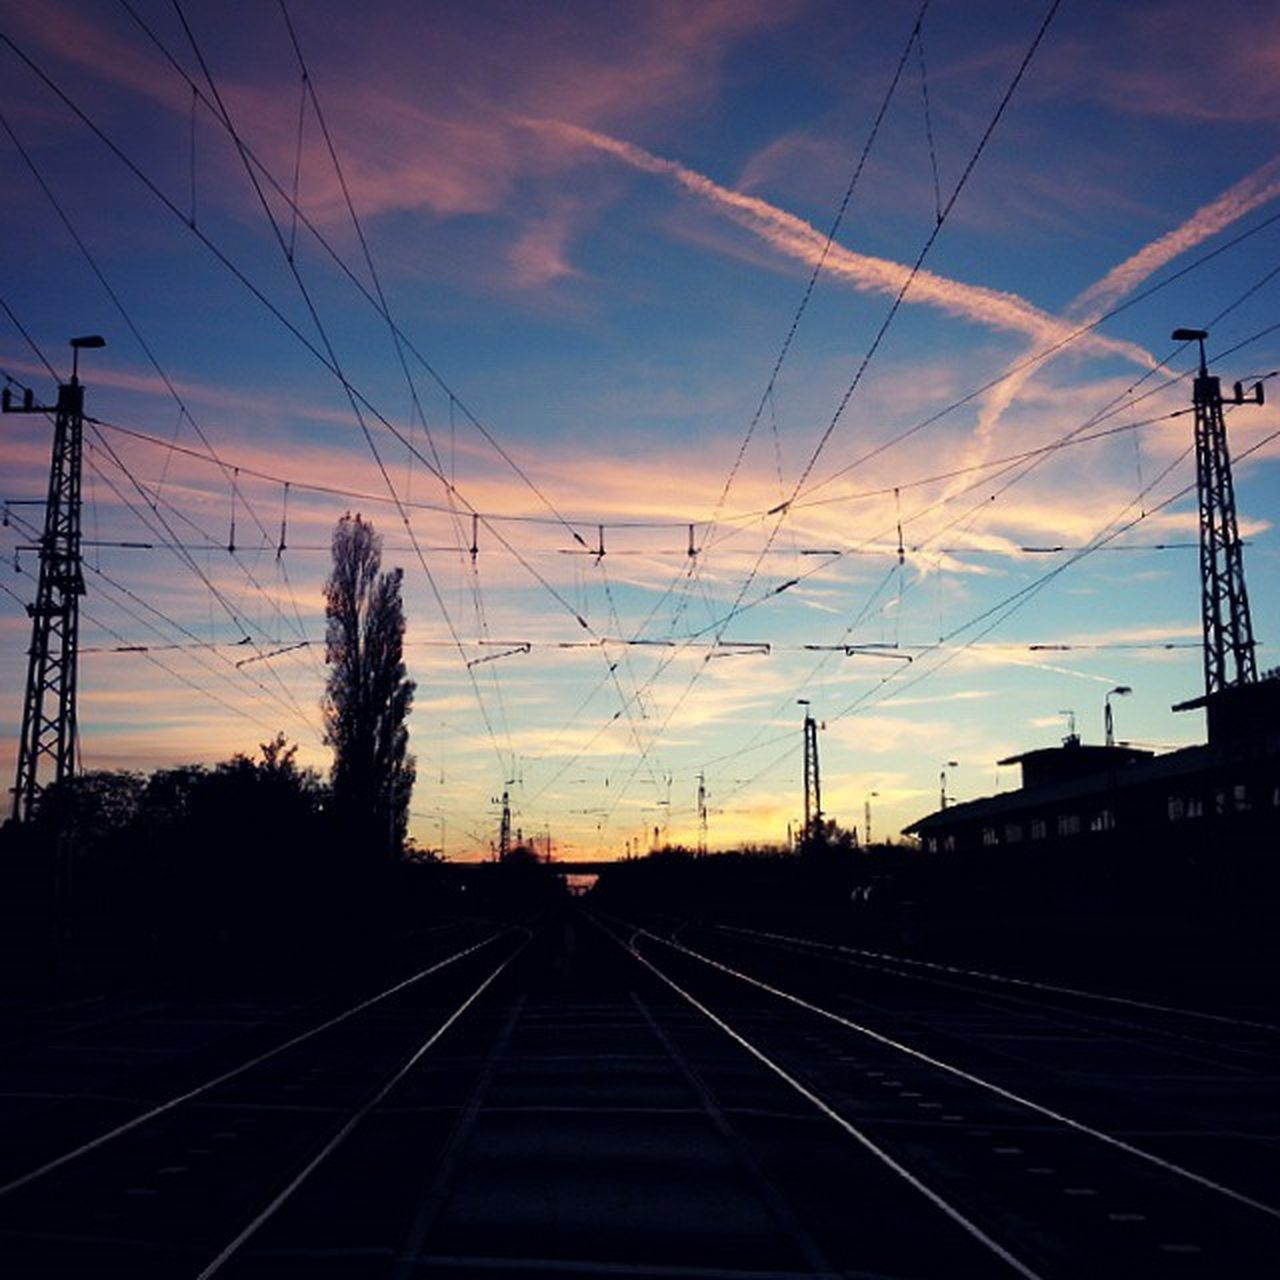 railroad track, cable, rail transportation, sky, transportation, sunset, electricity pylon, power line, cloud - sky, connection, no people, railway track, silhouette, power supply, electricity, outdoors, the way forward, built structure, nature, technology, day, architecture